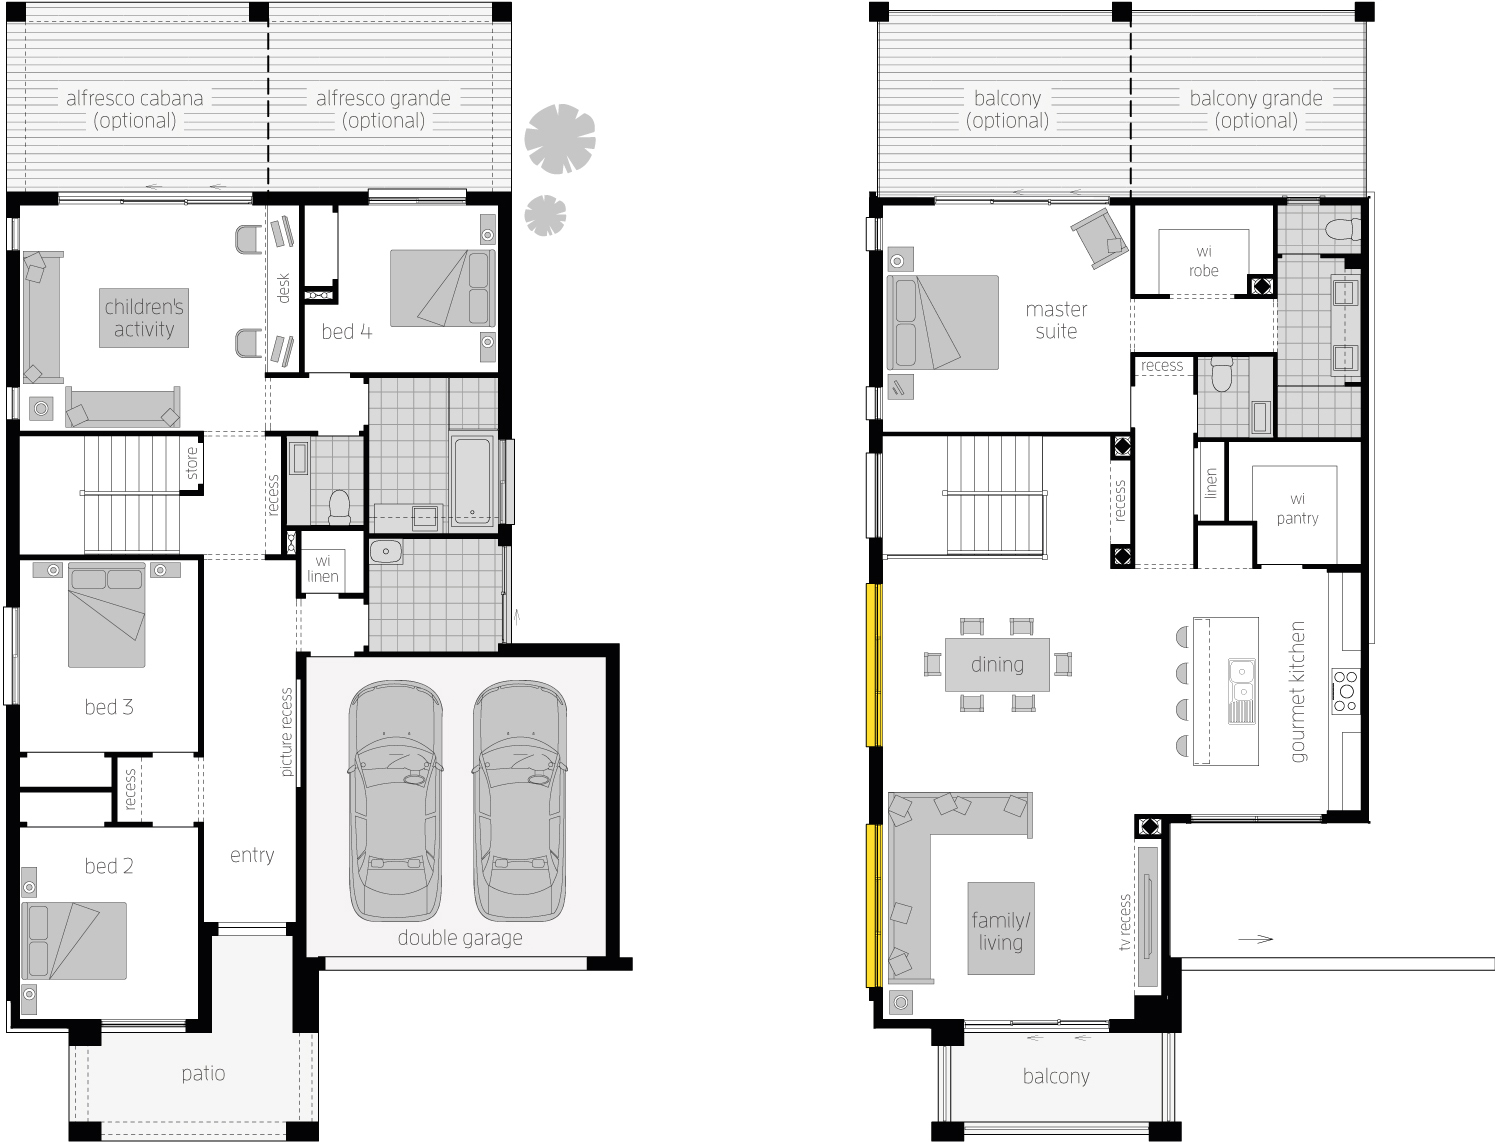 Floor Plan - Massena 30 Upside Down Two Storey Home - McDonald Jones